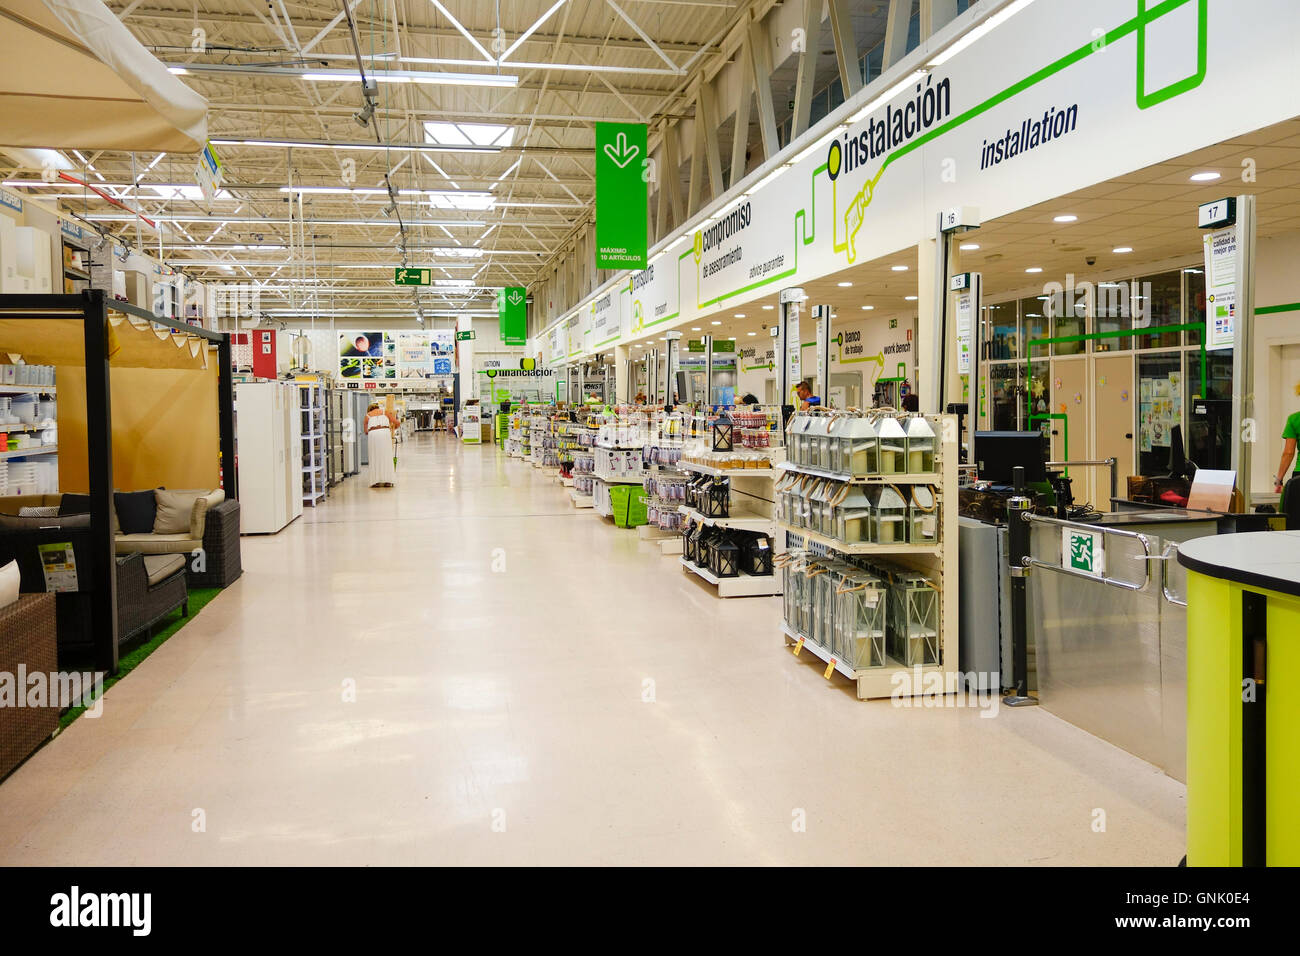 Interior leroy merlin retail chain store diy products construction stock photo royalty free - Leroy merlin theix ...